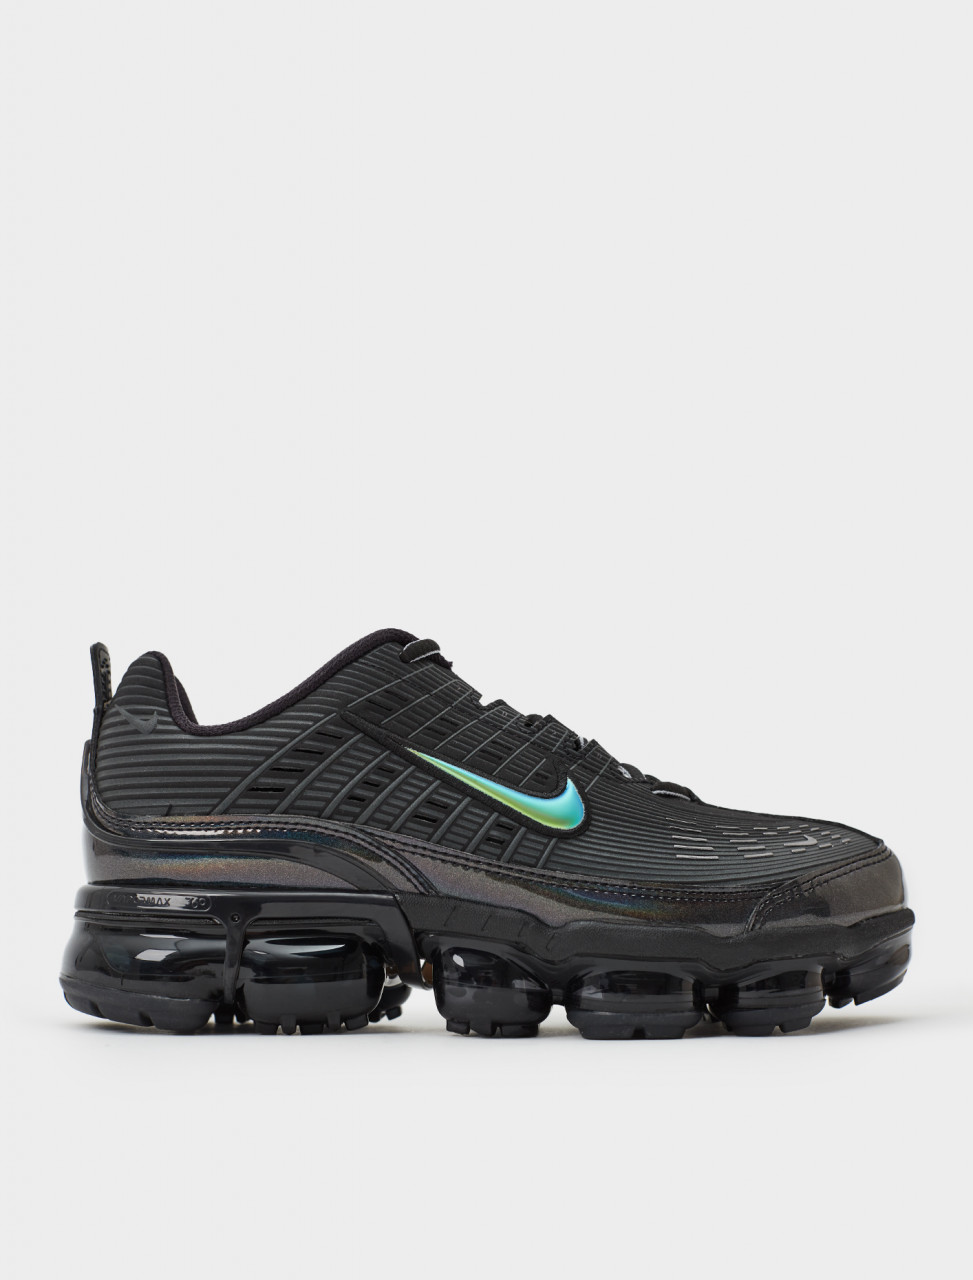 Side view of Nike Air VaporMax 360 Sneaker in Black Anthracite